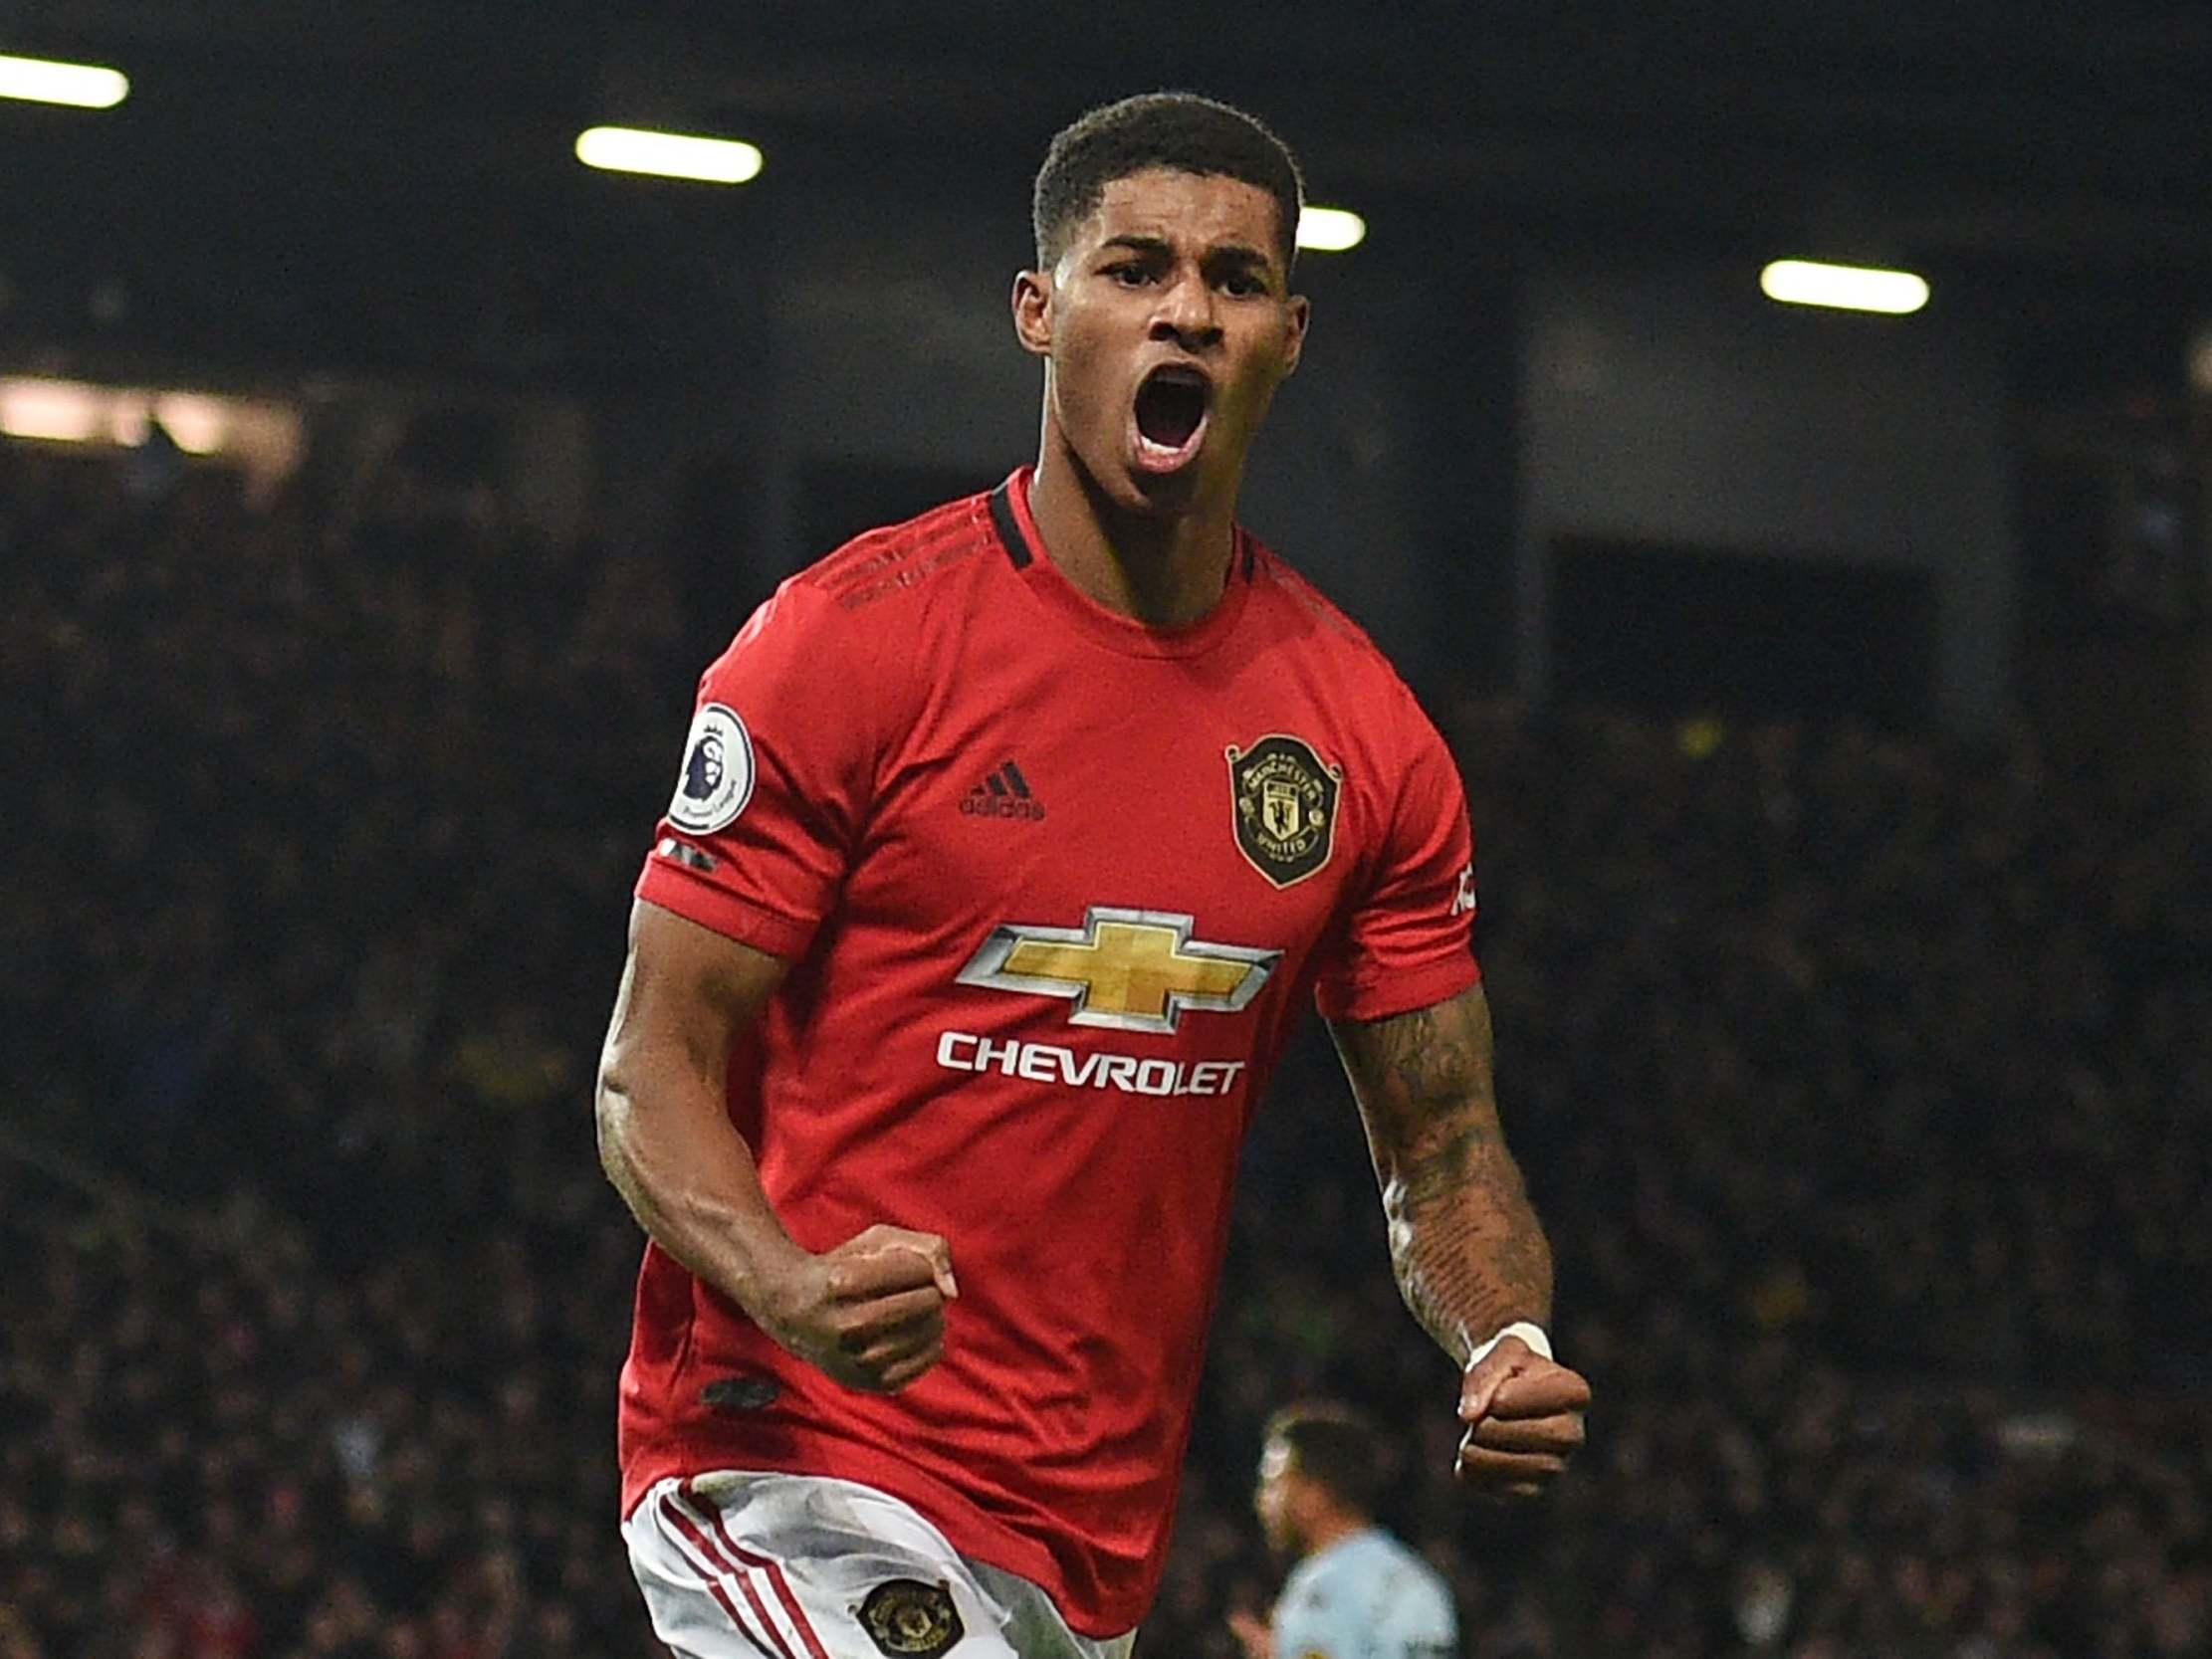 Marcus Rashford Says This Is England 2020 After Expressing Delight At Boris Johnson U Turn The Independent The Independent